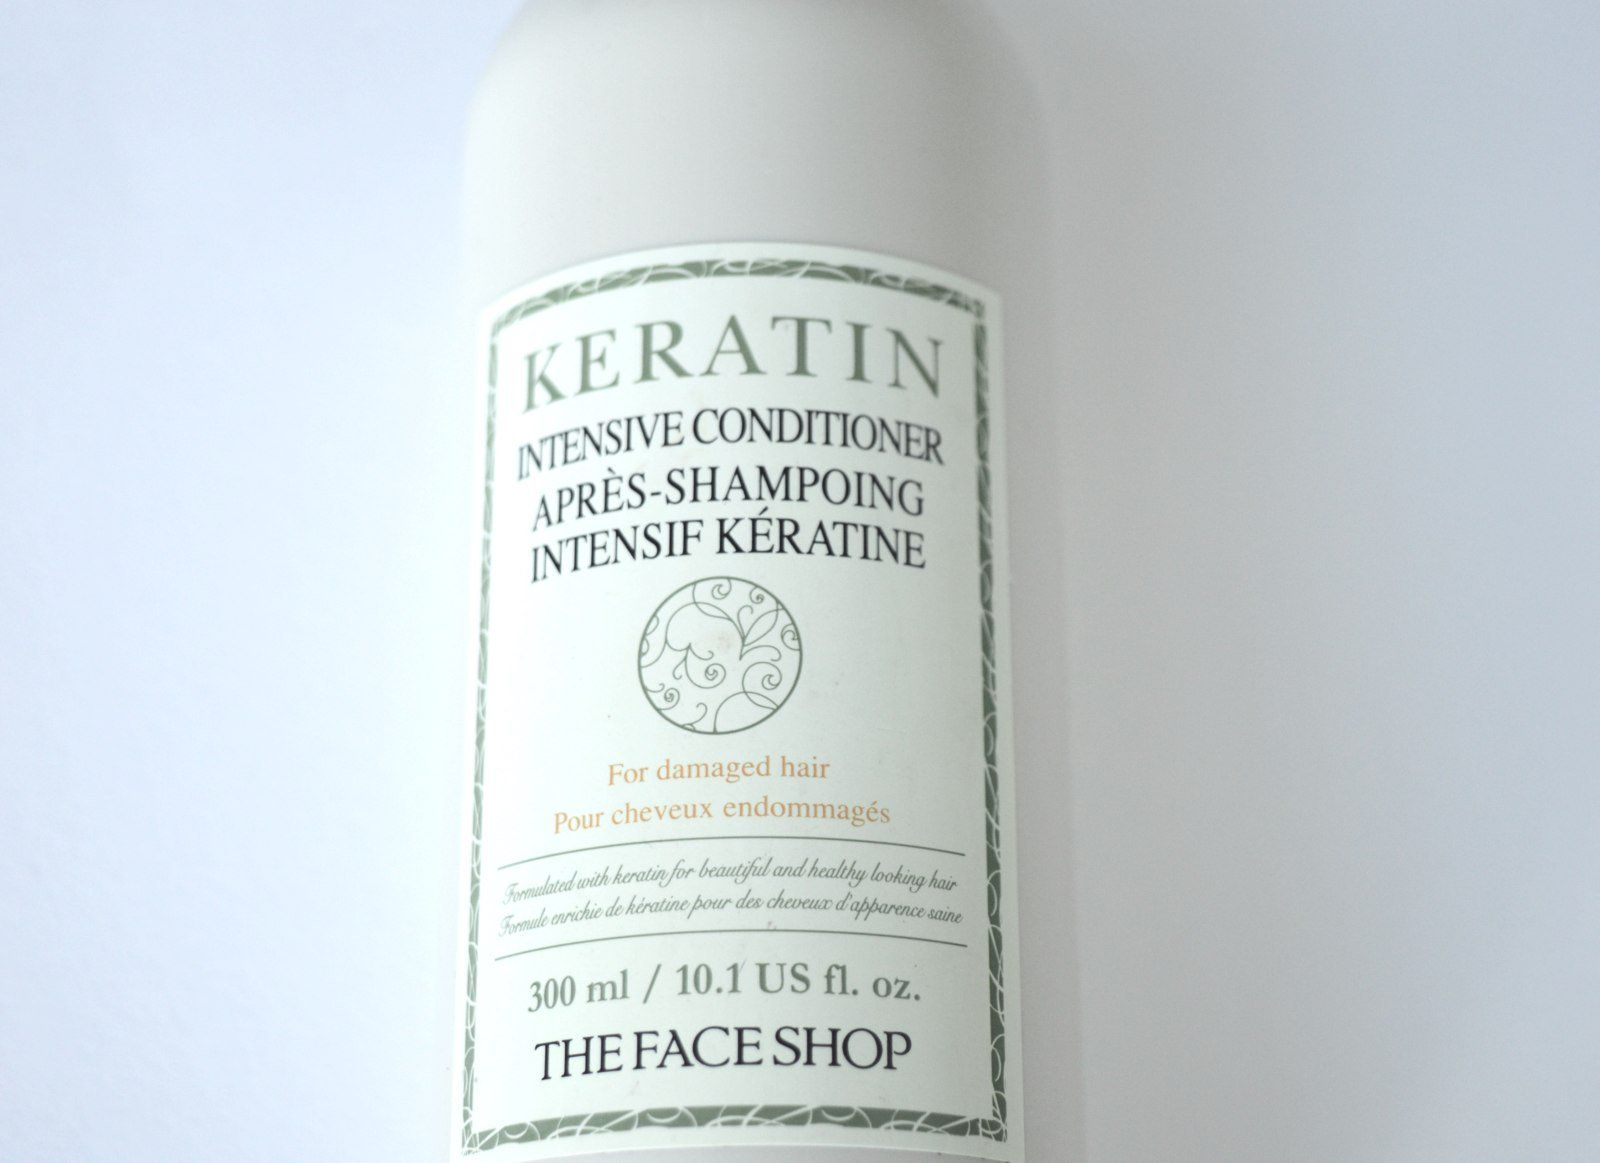 The Face Shop Keratin Intensive Conditioner Review The